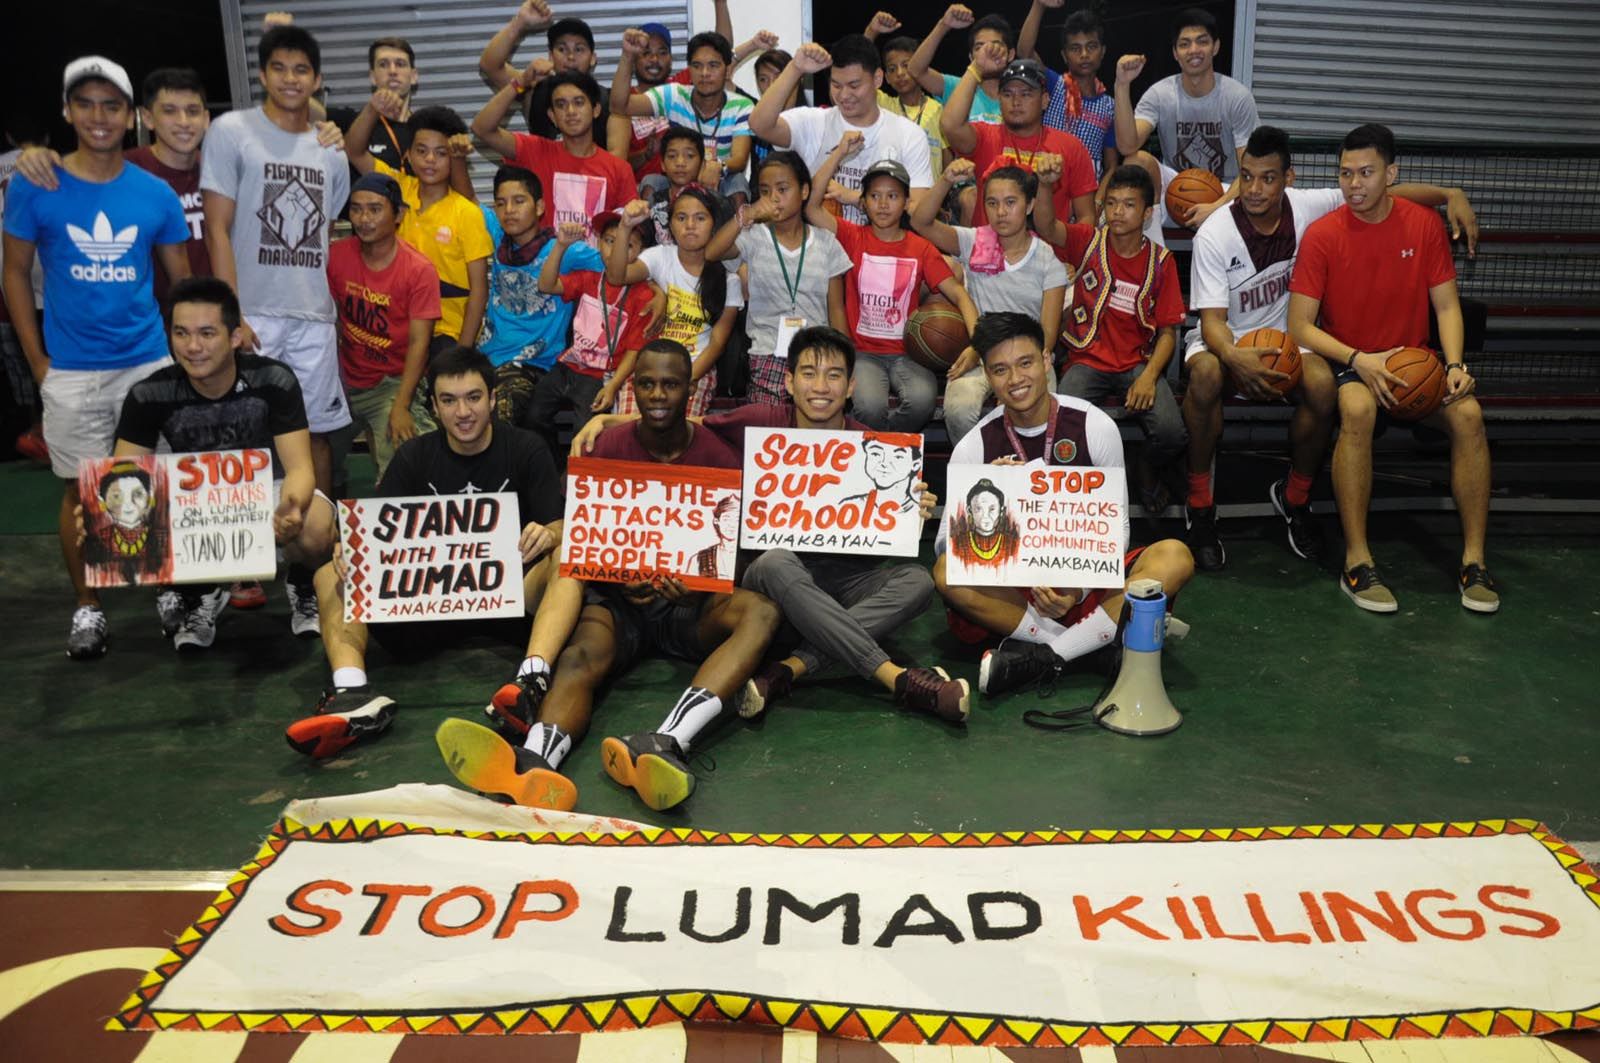 STOP LUMAD KILLINGS. UP Fighting Maroons show their support for the Lumad in Mindanao